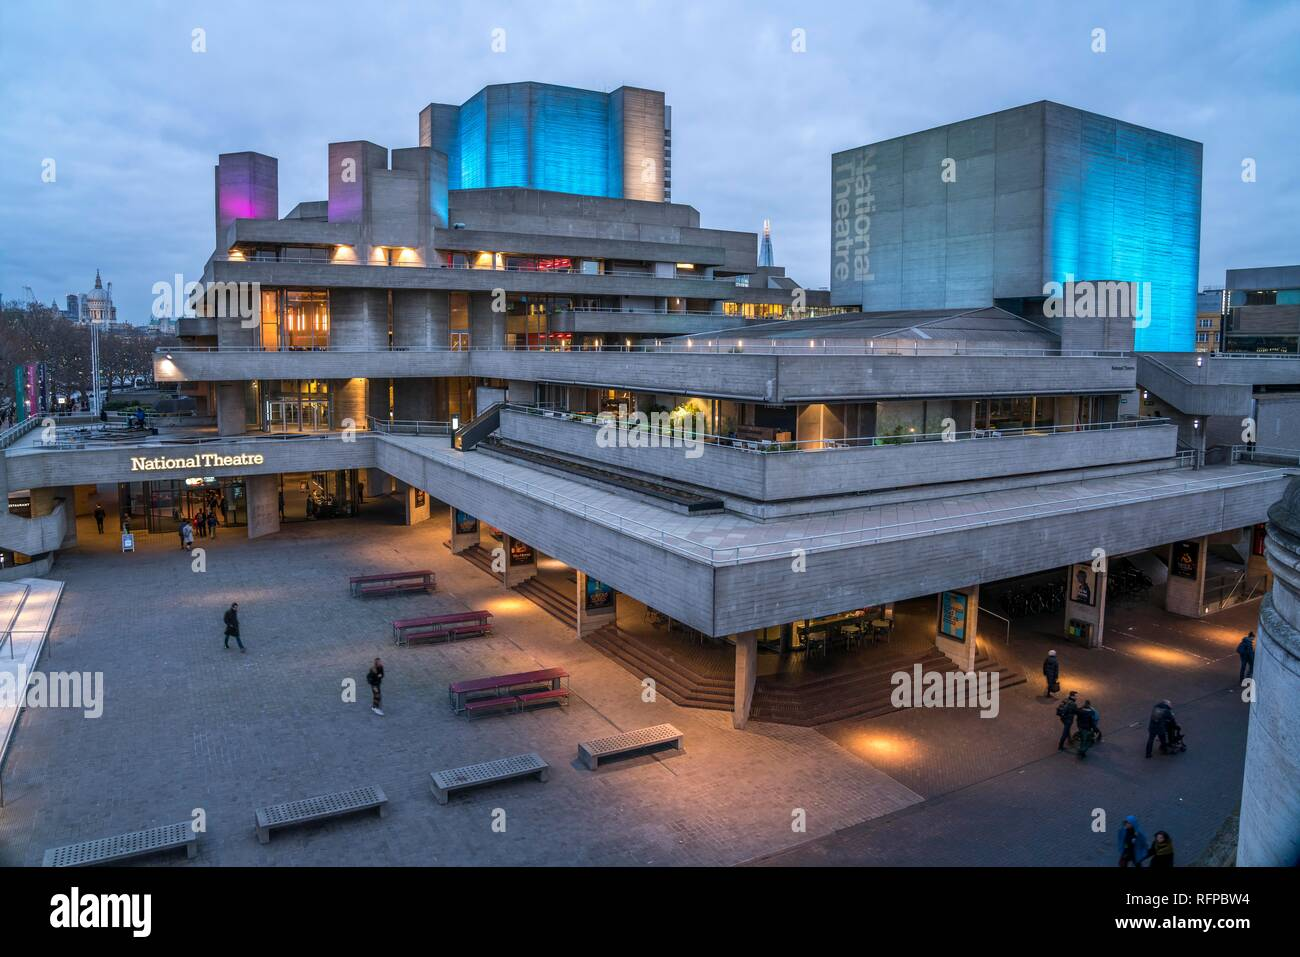 National Theatre at dusk, London, Great Britain - Stock Image